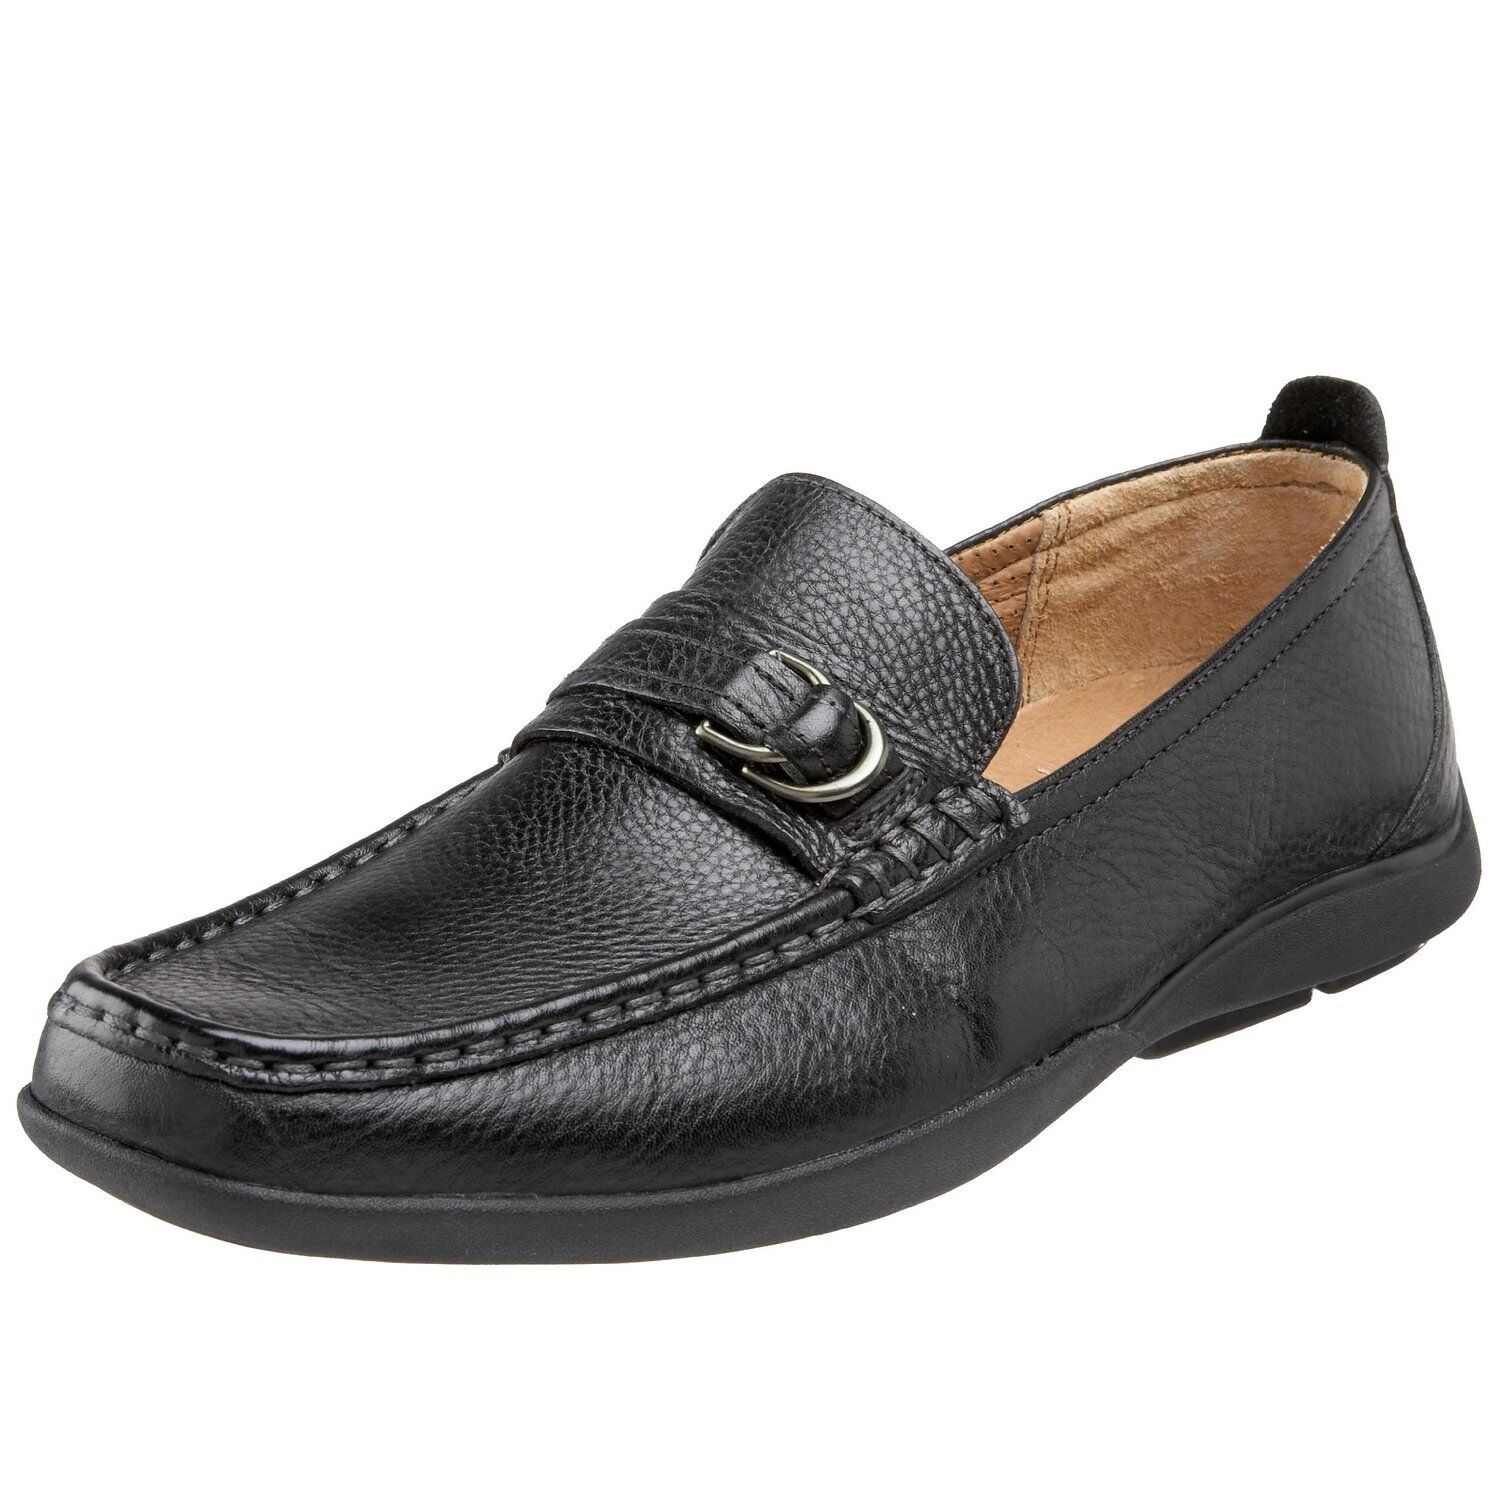 Florsheim 'Heyworth' Black Leather Buckle Loafers Sz 11